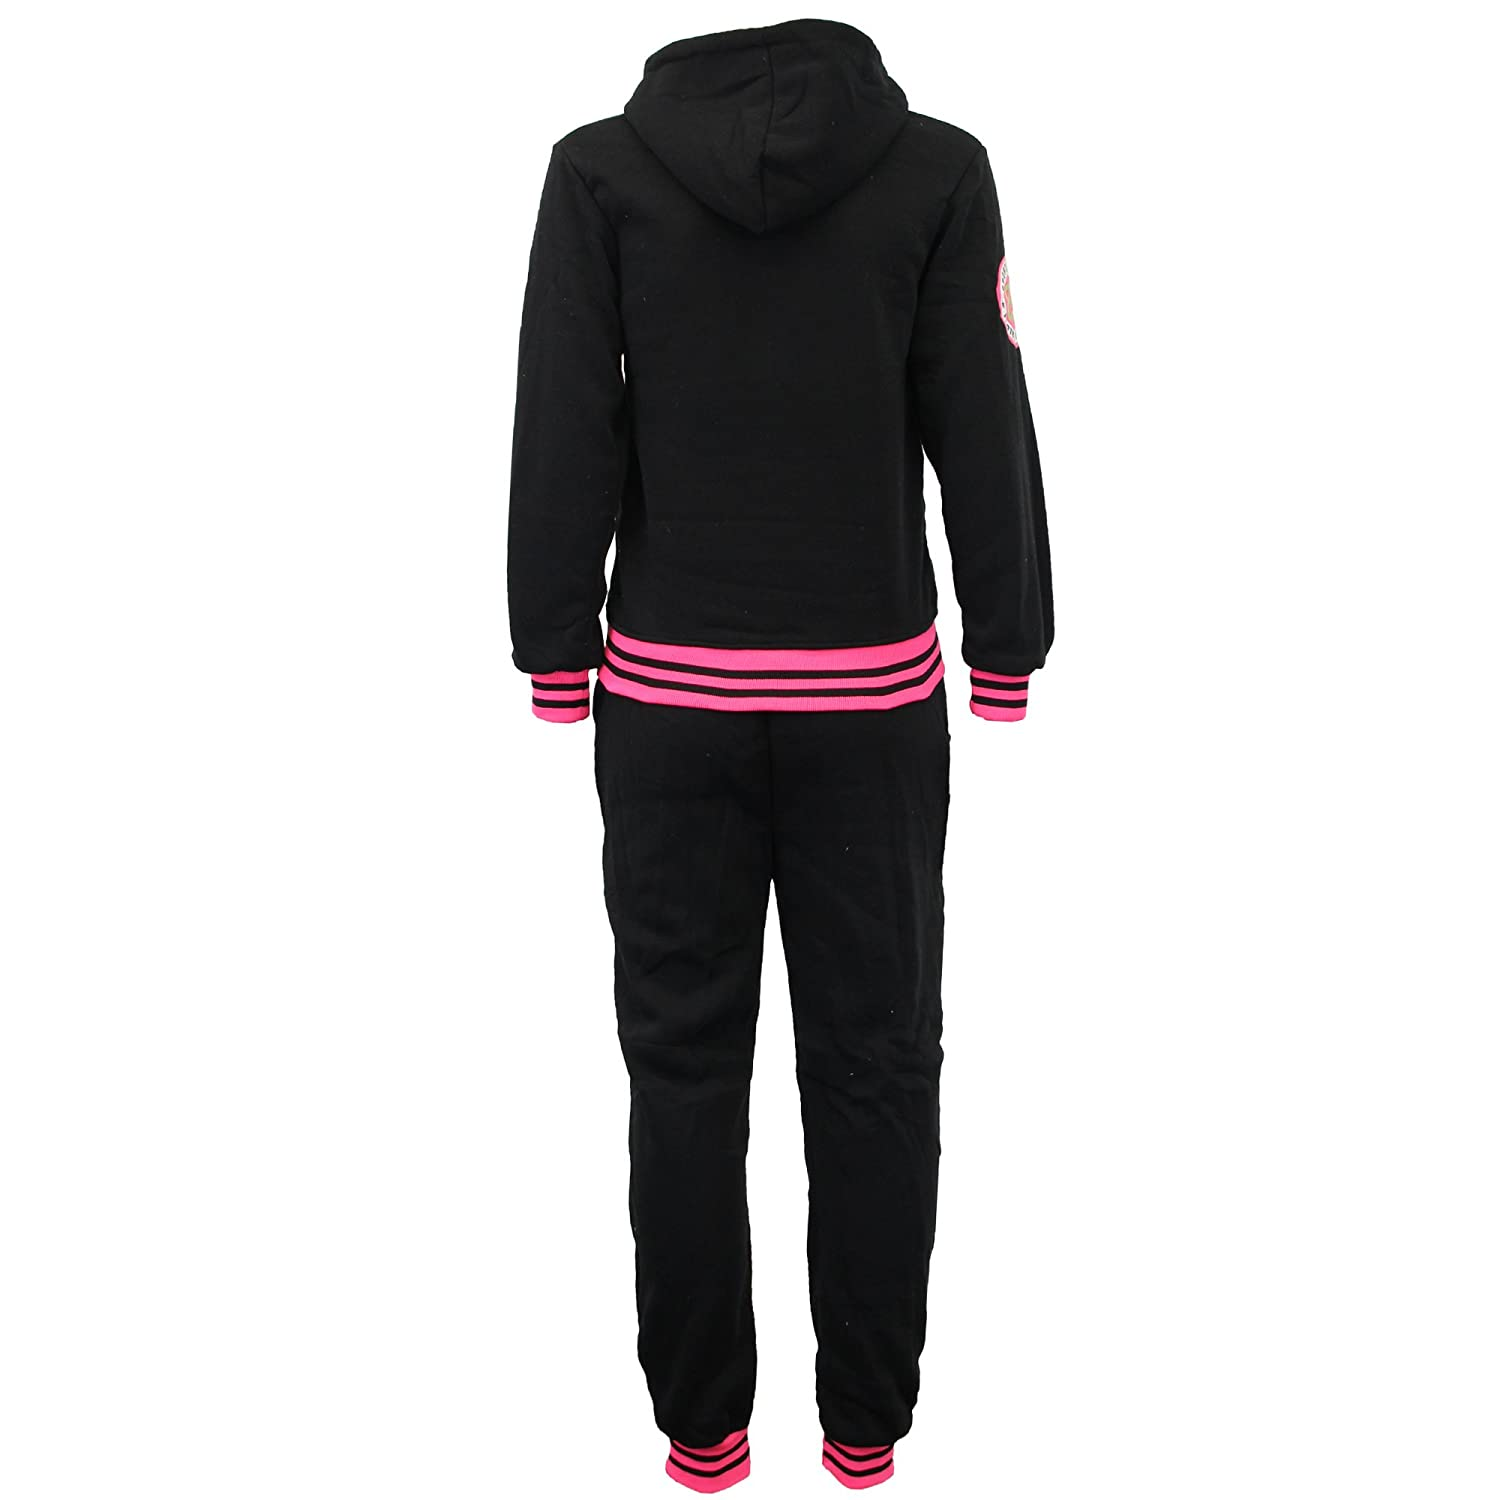 UNVC Girls Stylish Hooded Tracksuits